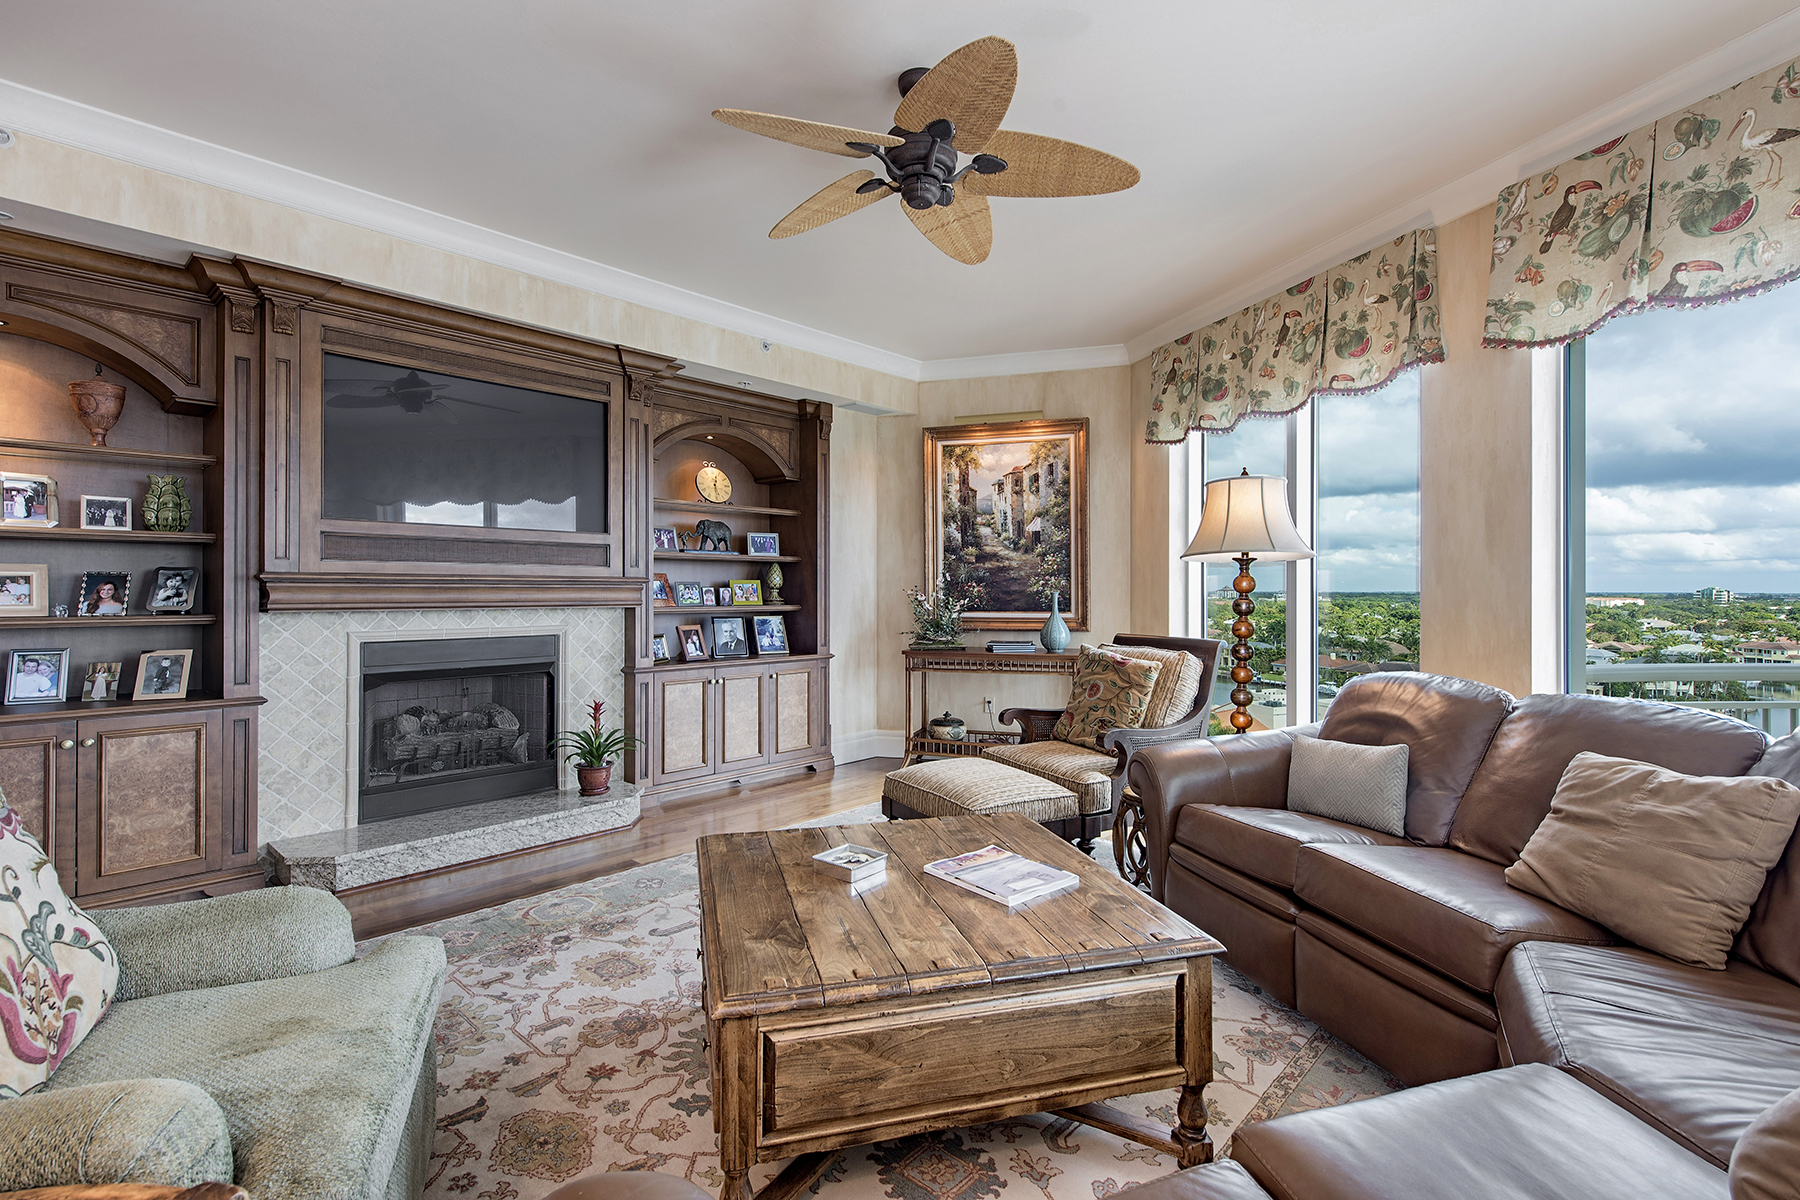 Condominium for Sale at PARK SHORE - ARIA 4501 Gulf Shore Blvd N 1001, Naples, Florida 34103 United States